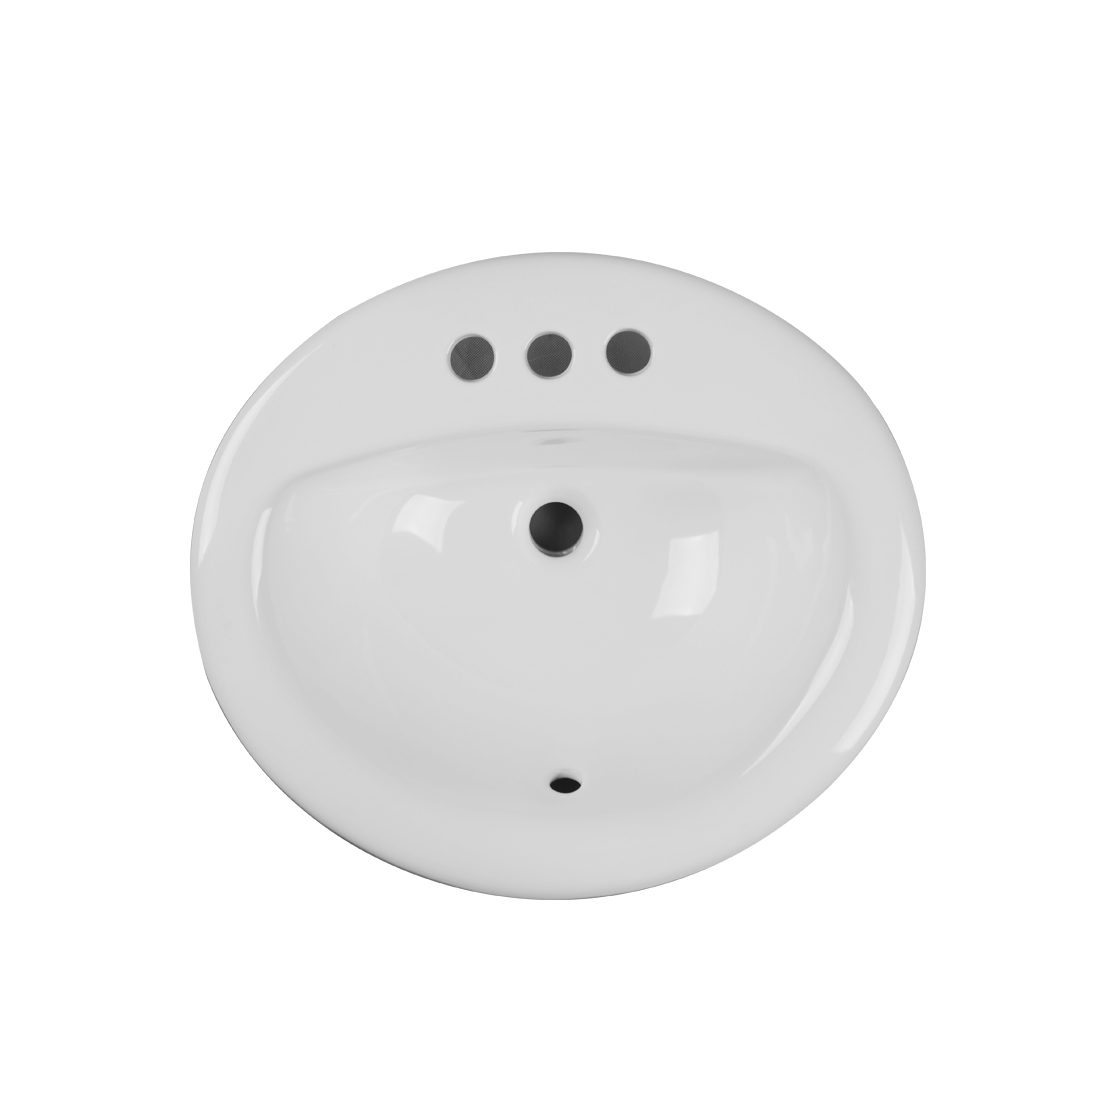 New York Lavatory 3Hole 4inch White Up View